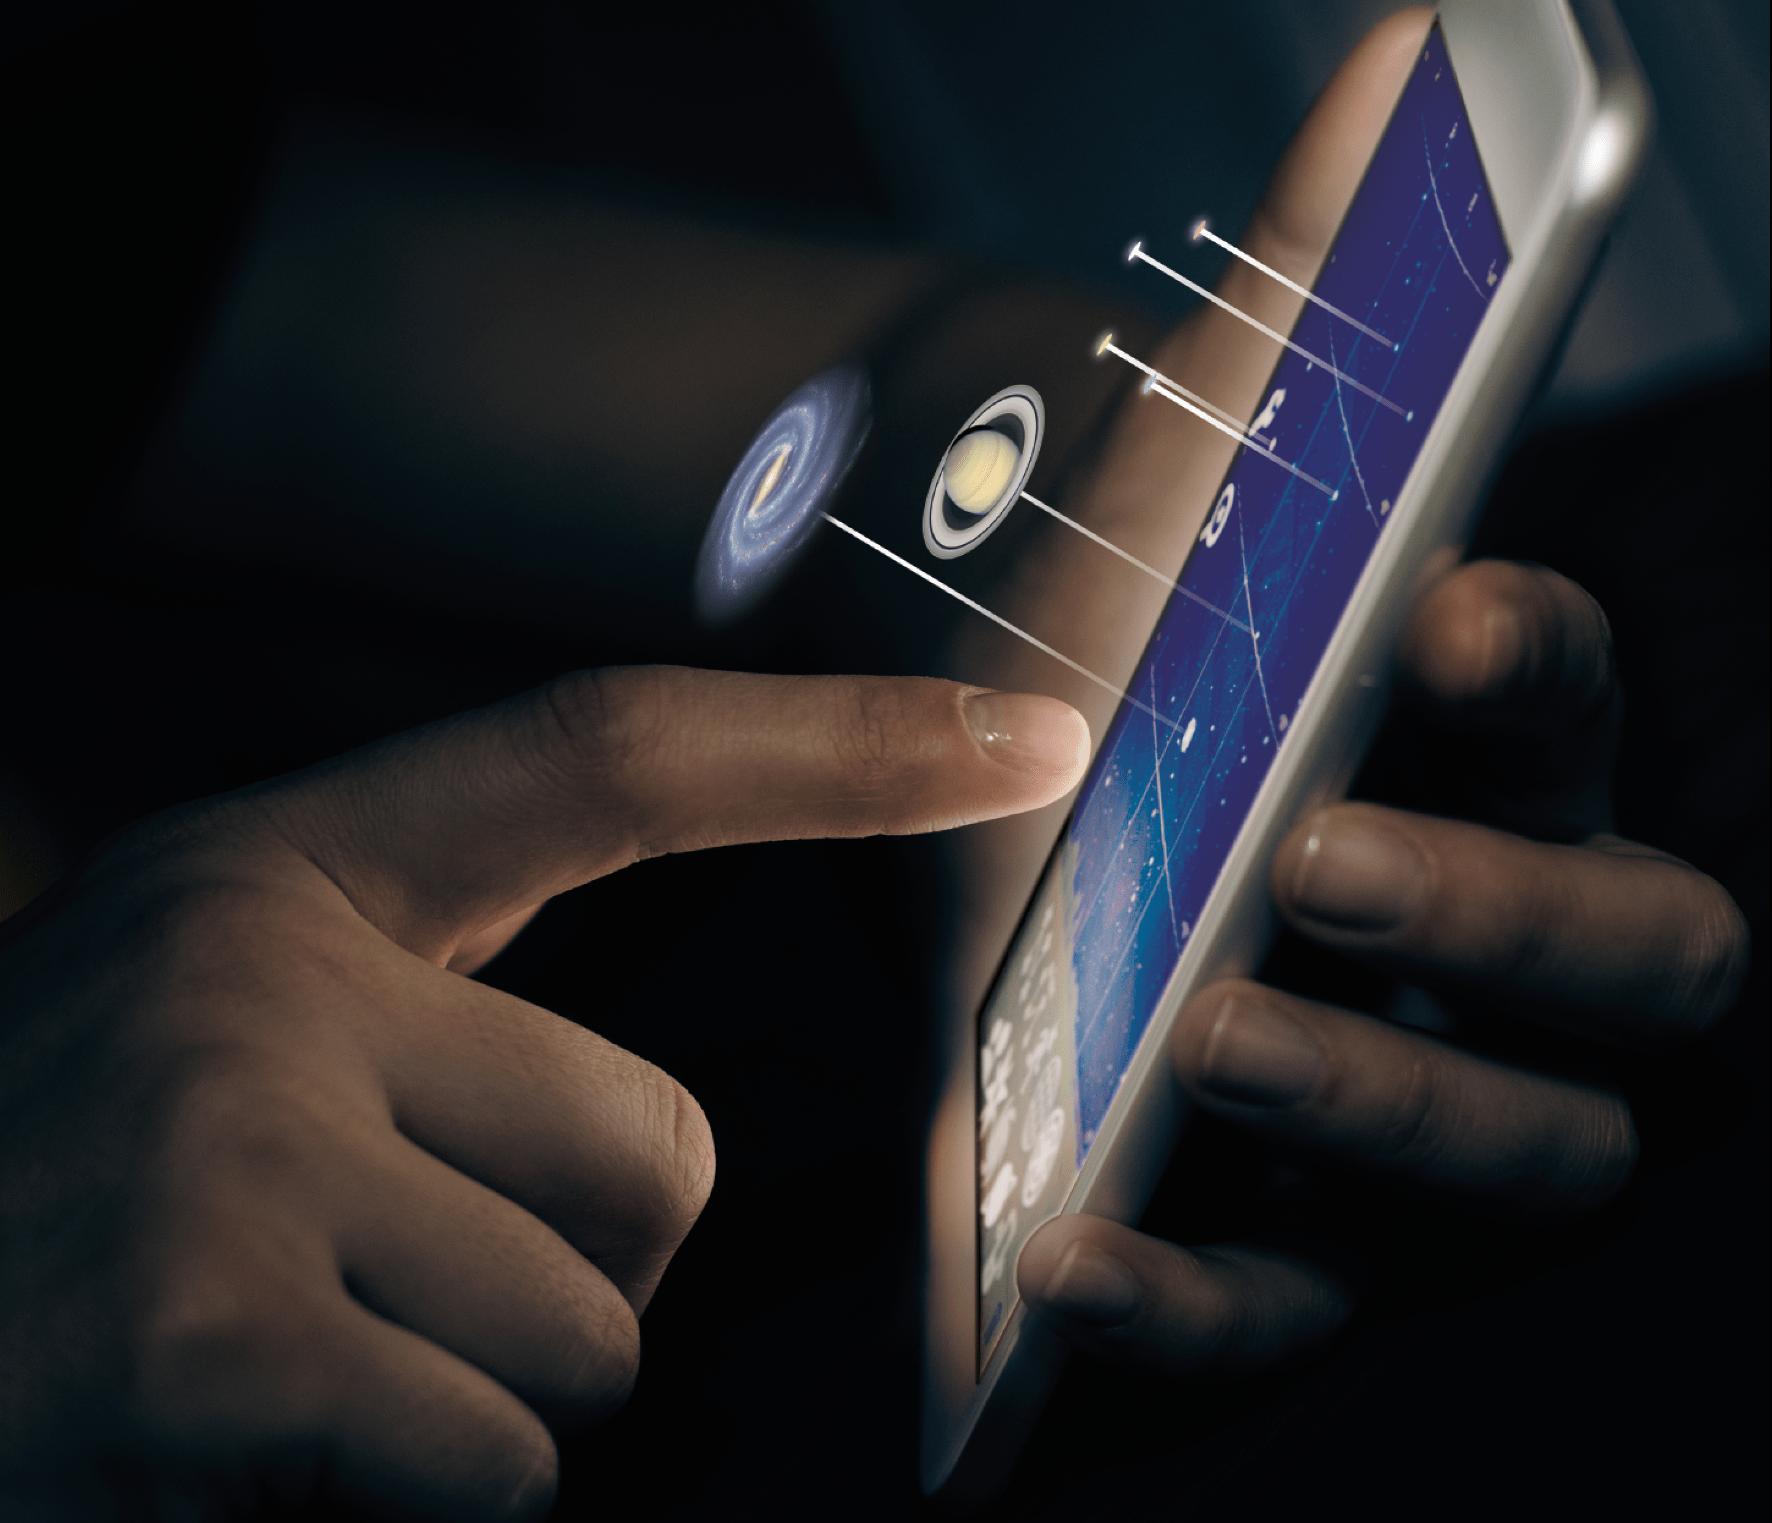 There are many smartphone astronomy apps available to help you navigate the night sky, including many that are free.